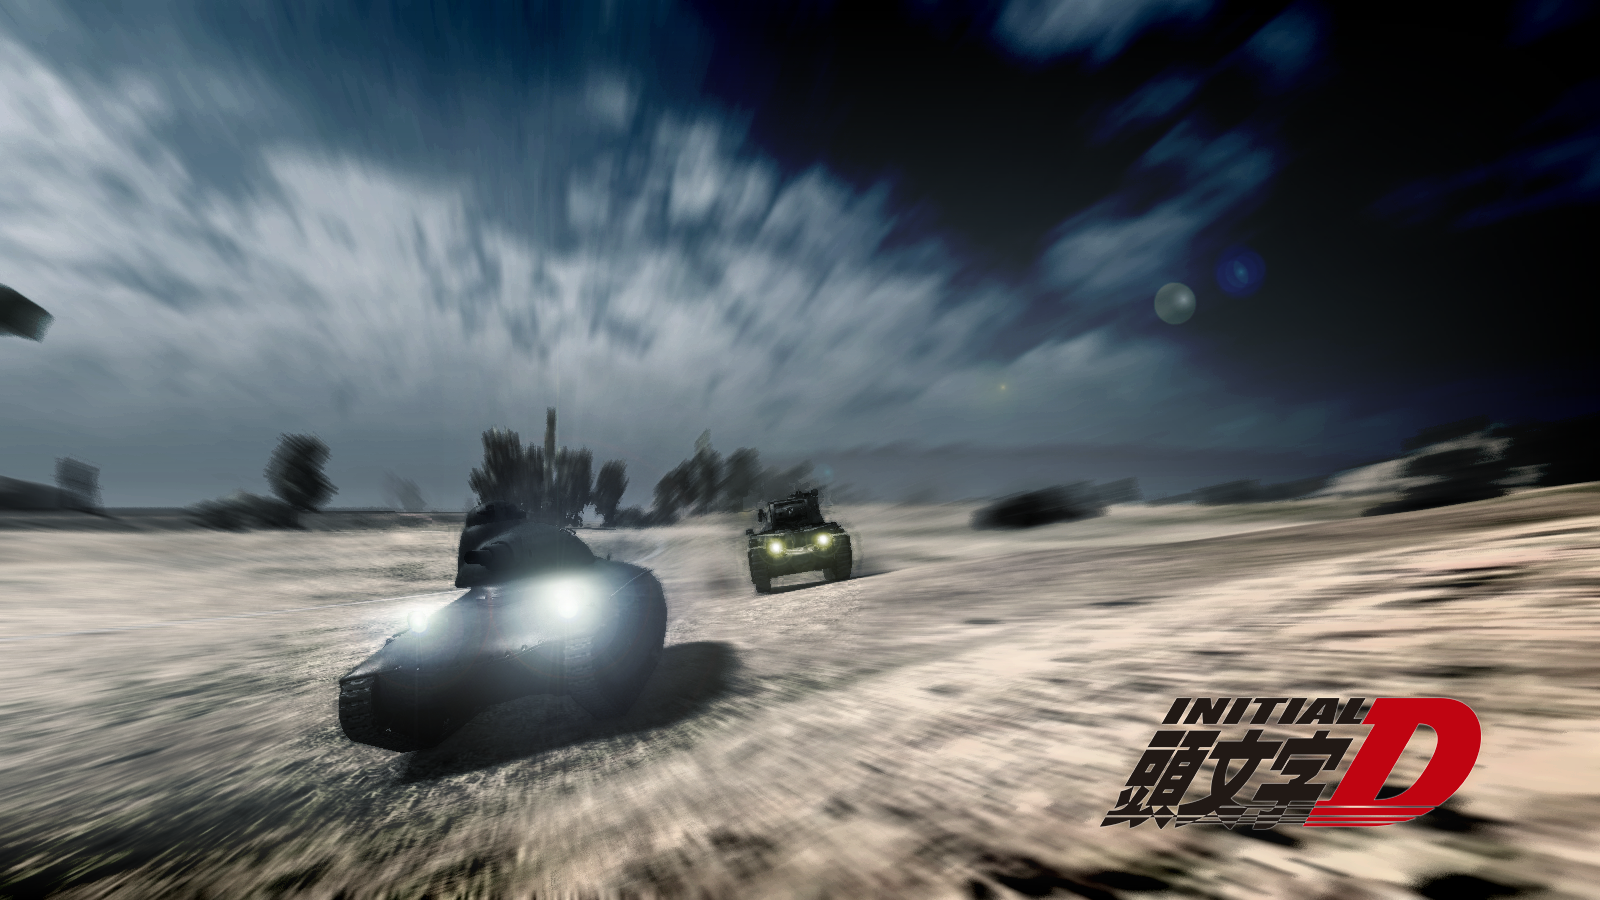 Initial d final stage wallpaper and background image - Initial d wallpaper 1920x1080 ...